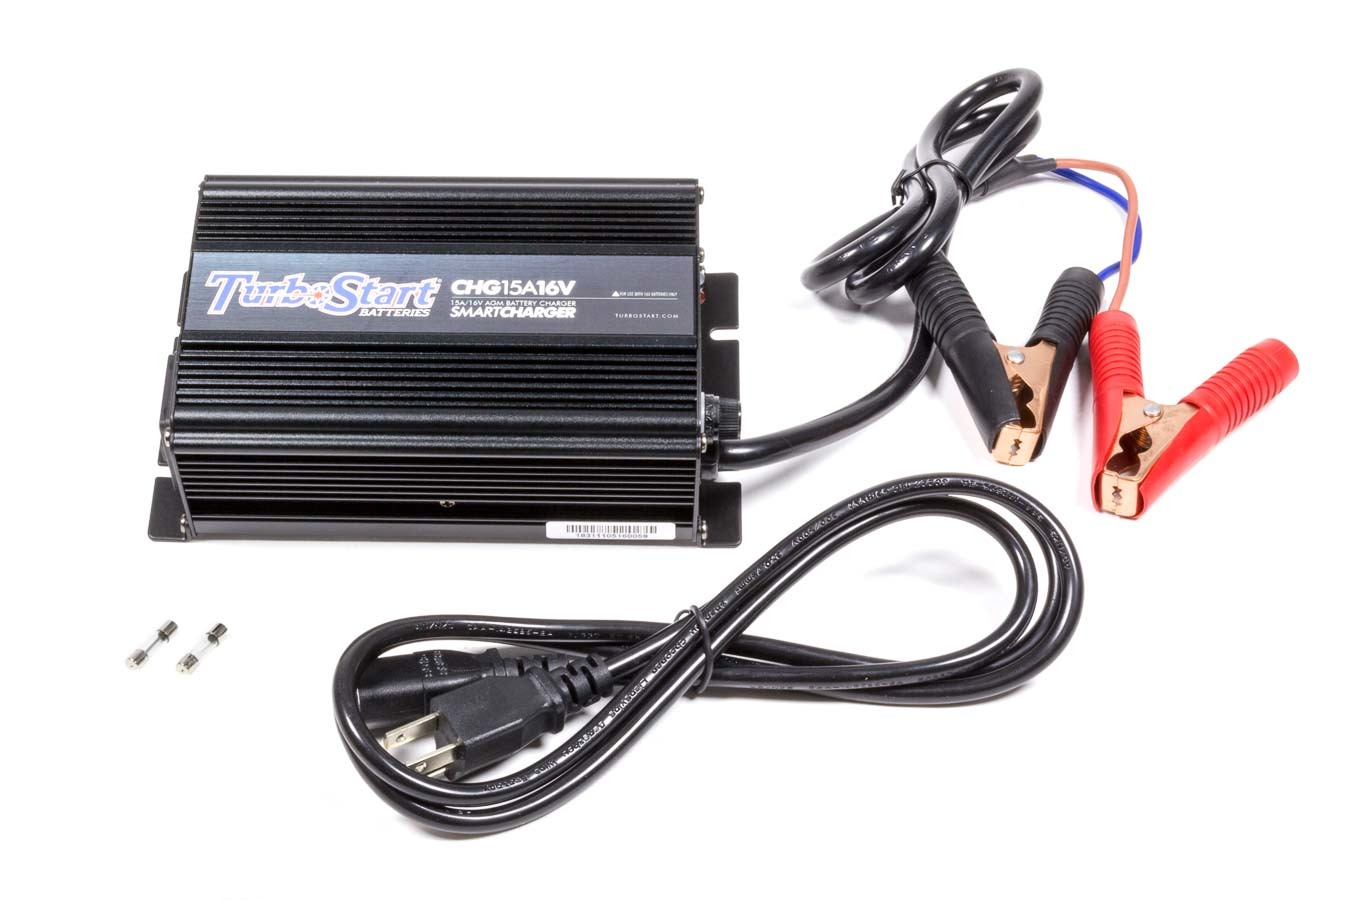 TURBO START CHG15A16V SMART Charger 16V